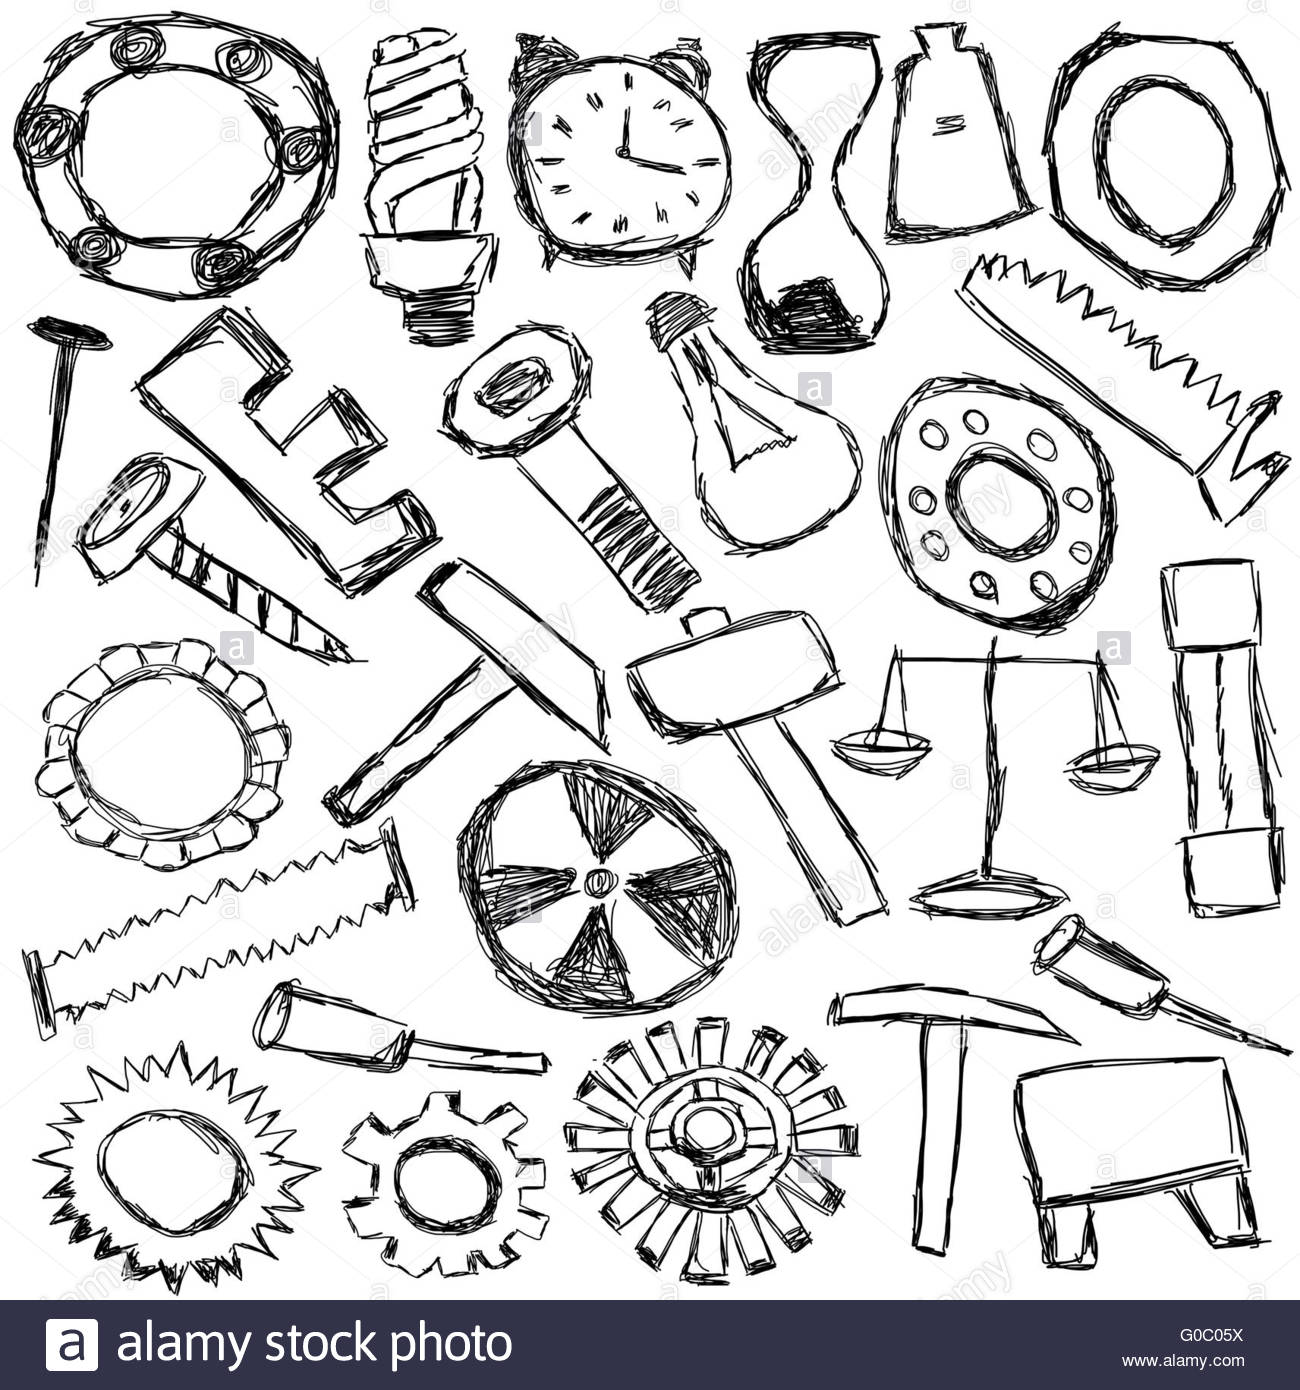 Auto Parts Drawing at GetDrawings.com   Free for personal use Auto ...